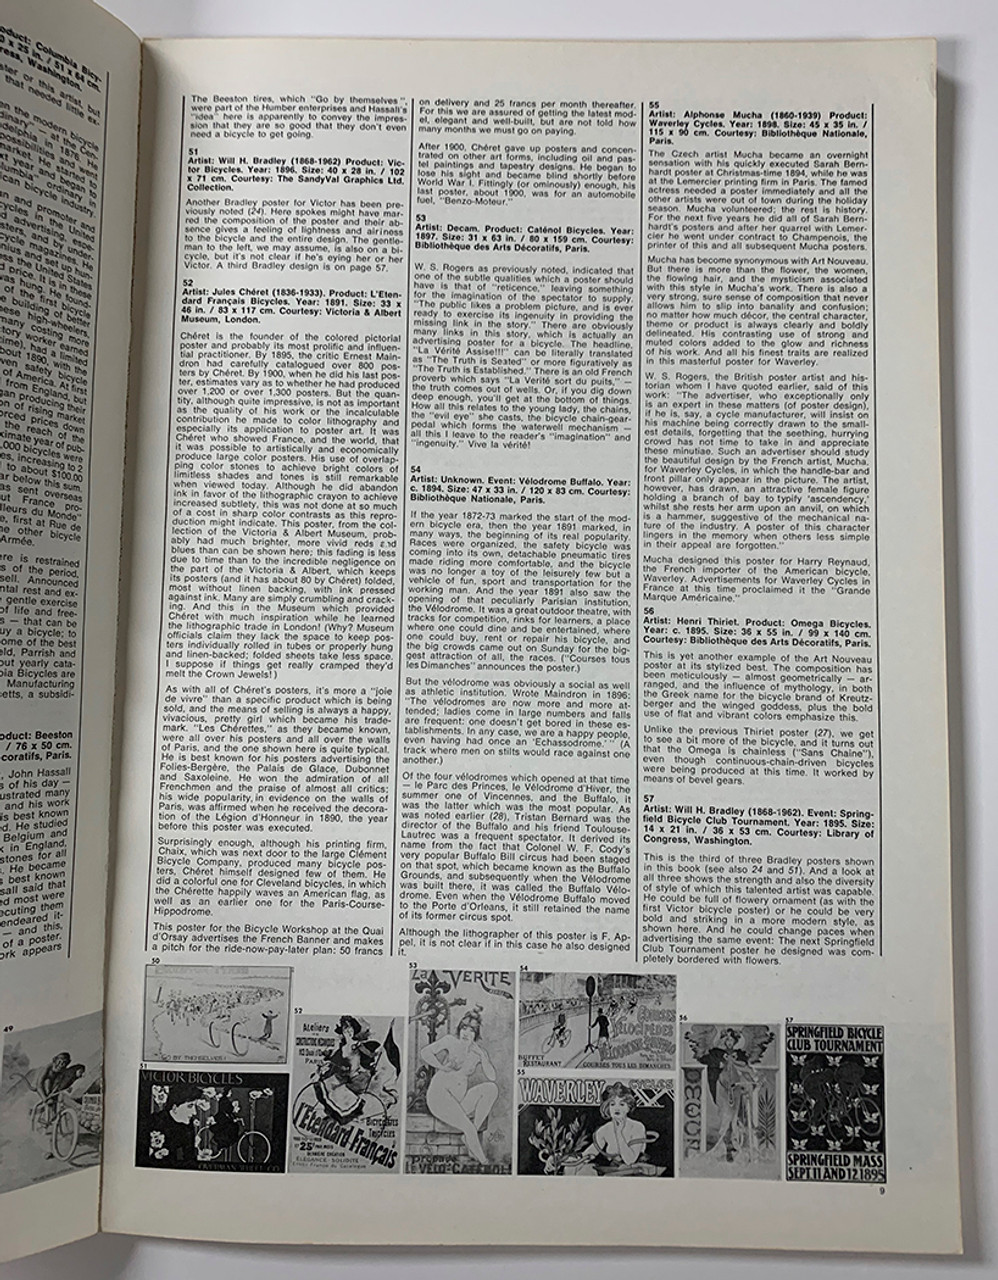 100 Years of Bicycle Posters - Poster Description Page